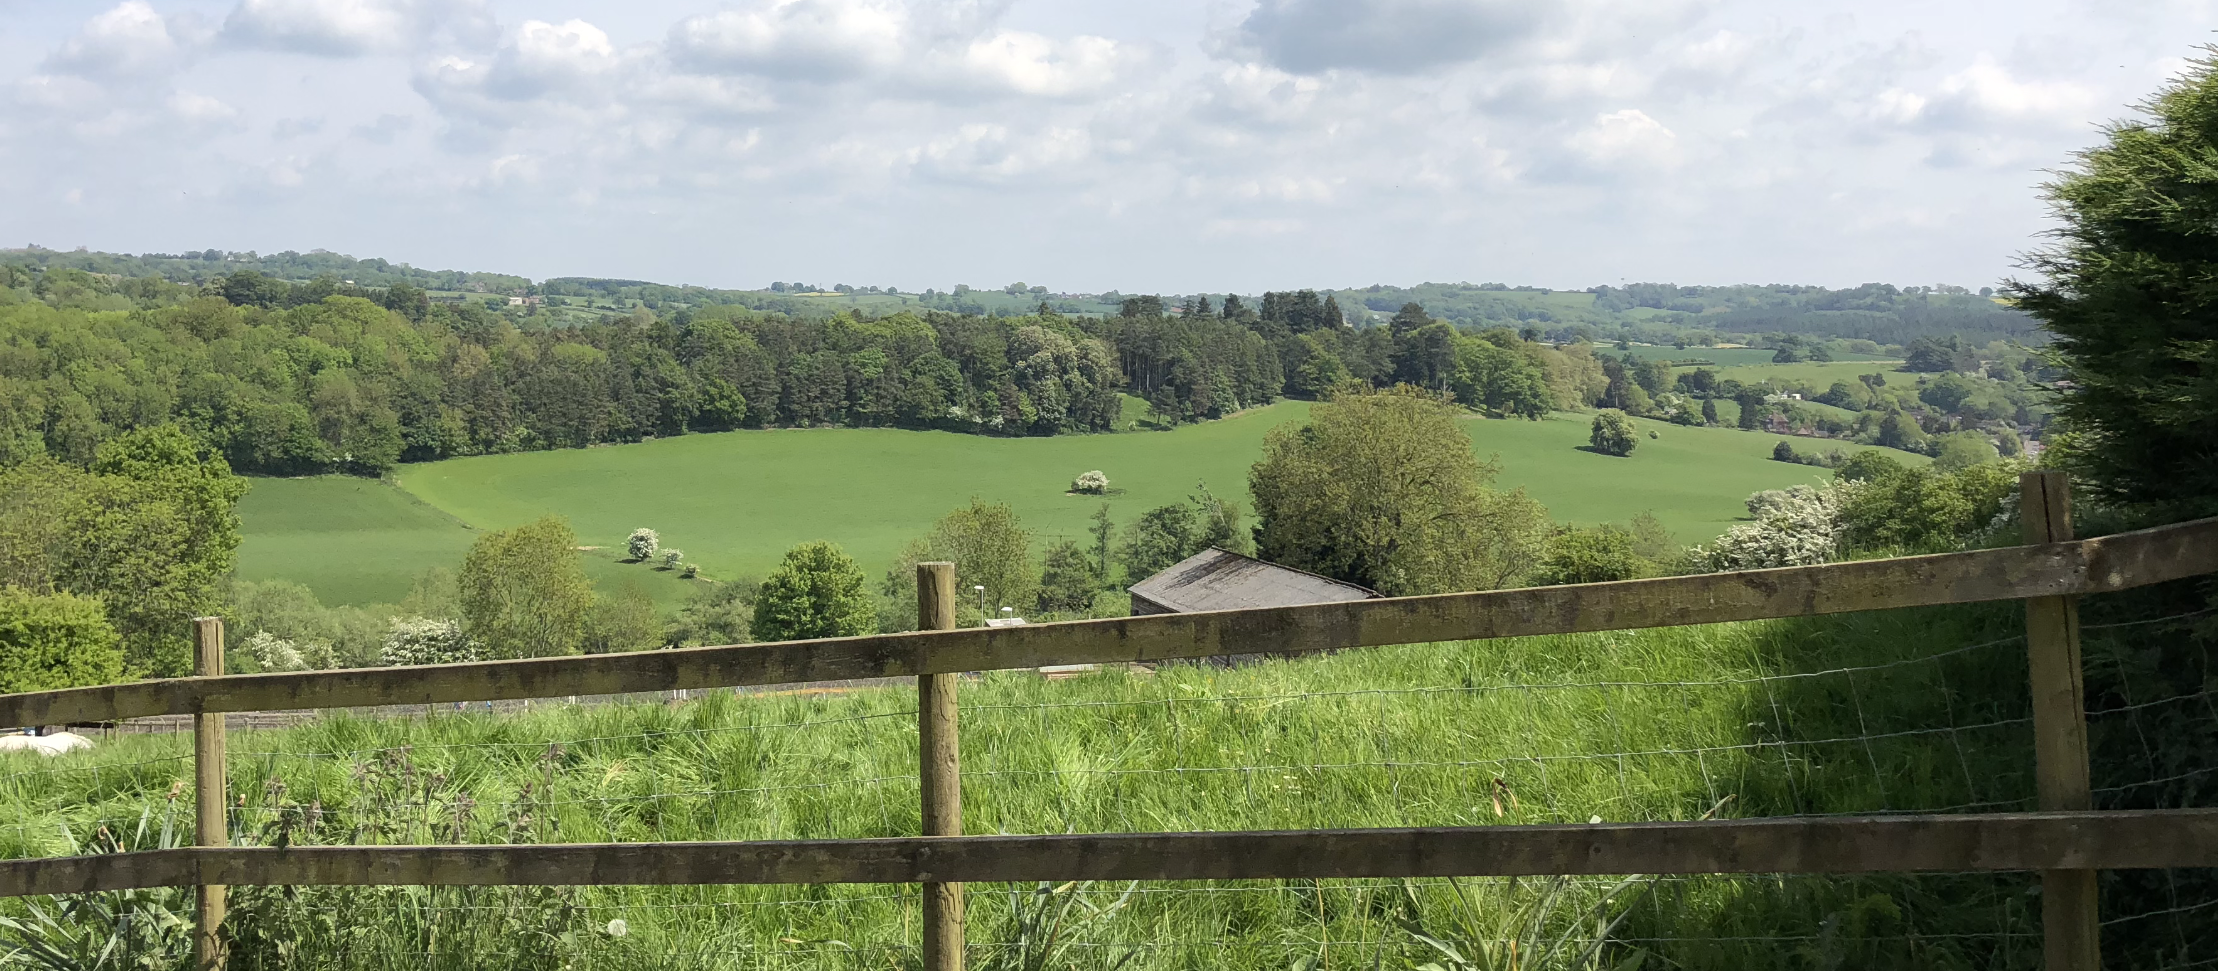 Looking through a railed fence down the Severn valley, it's springtime time, the trees are full of green leaves and blossom, the grass is lush the roof of Bank farm stables can be seen in the valley.